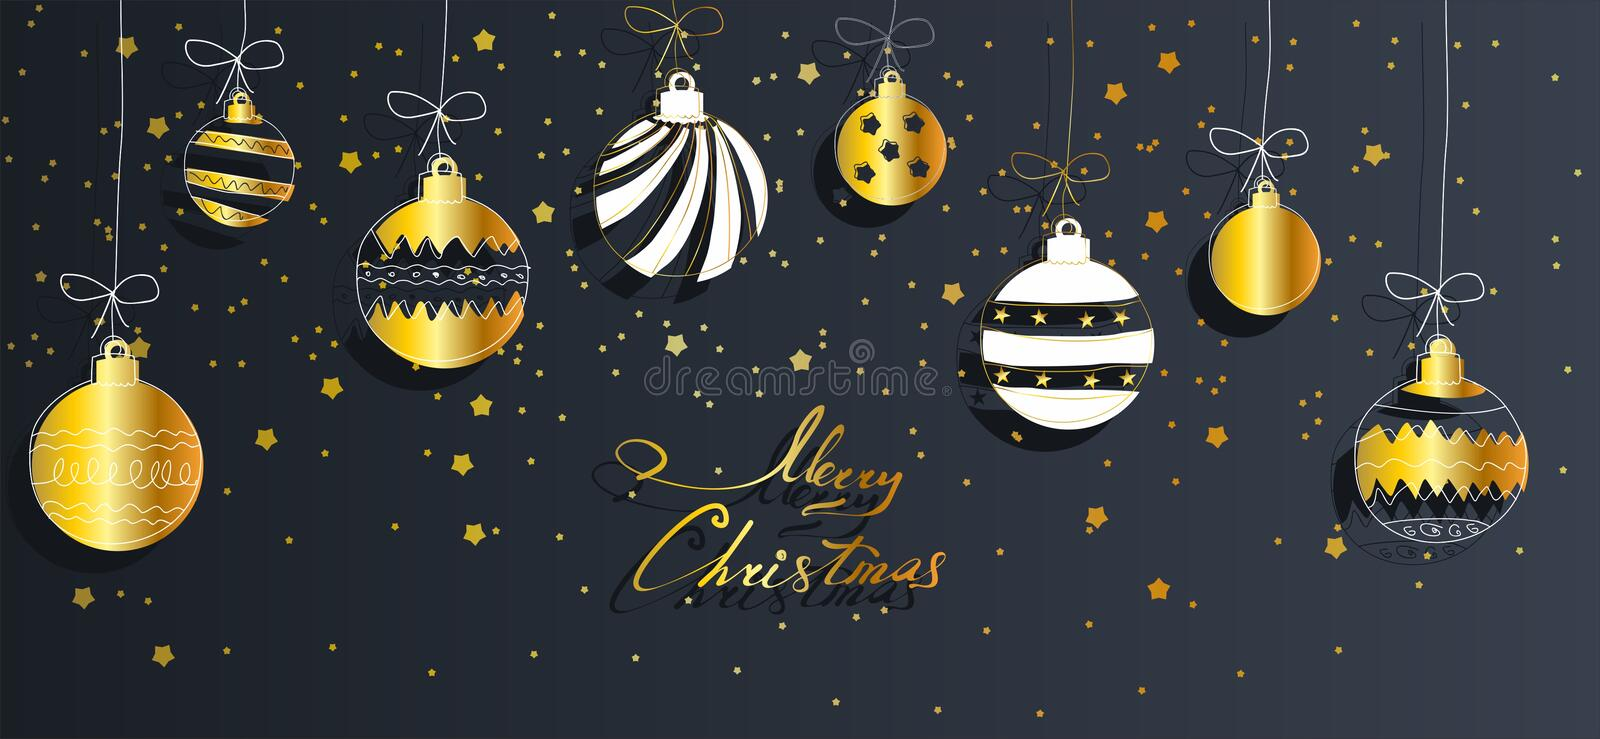 Christmas background with balls and strars royalty free stock photo